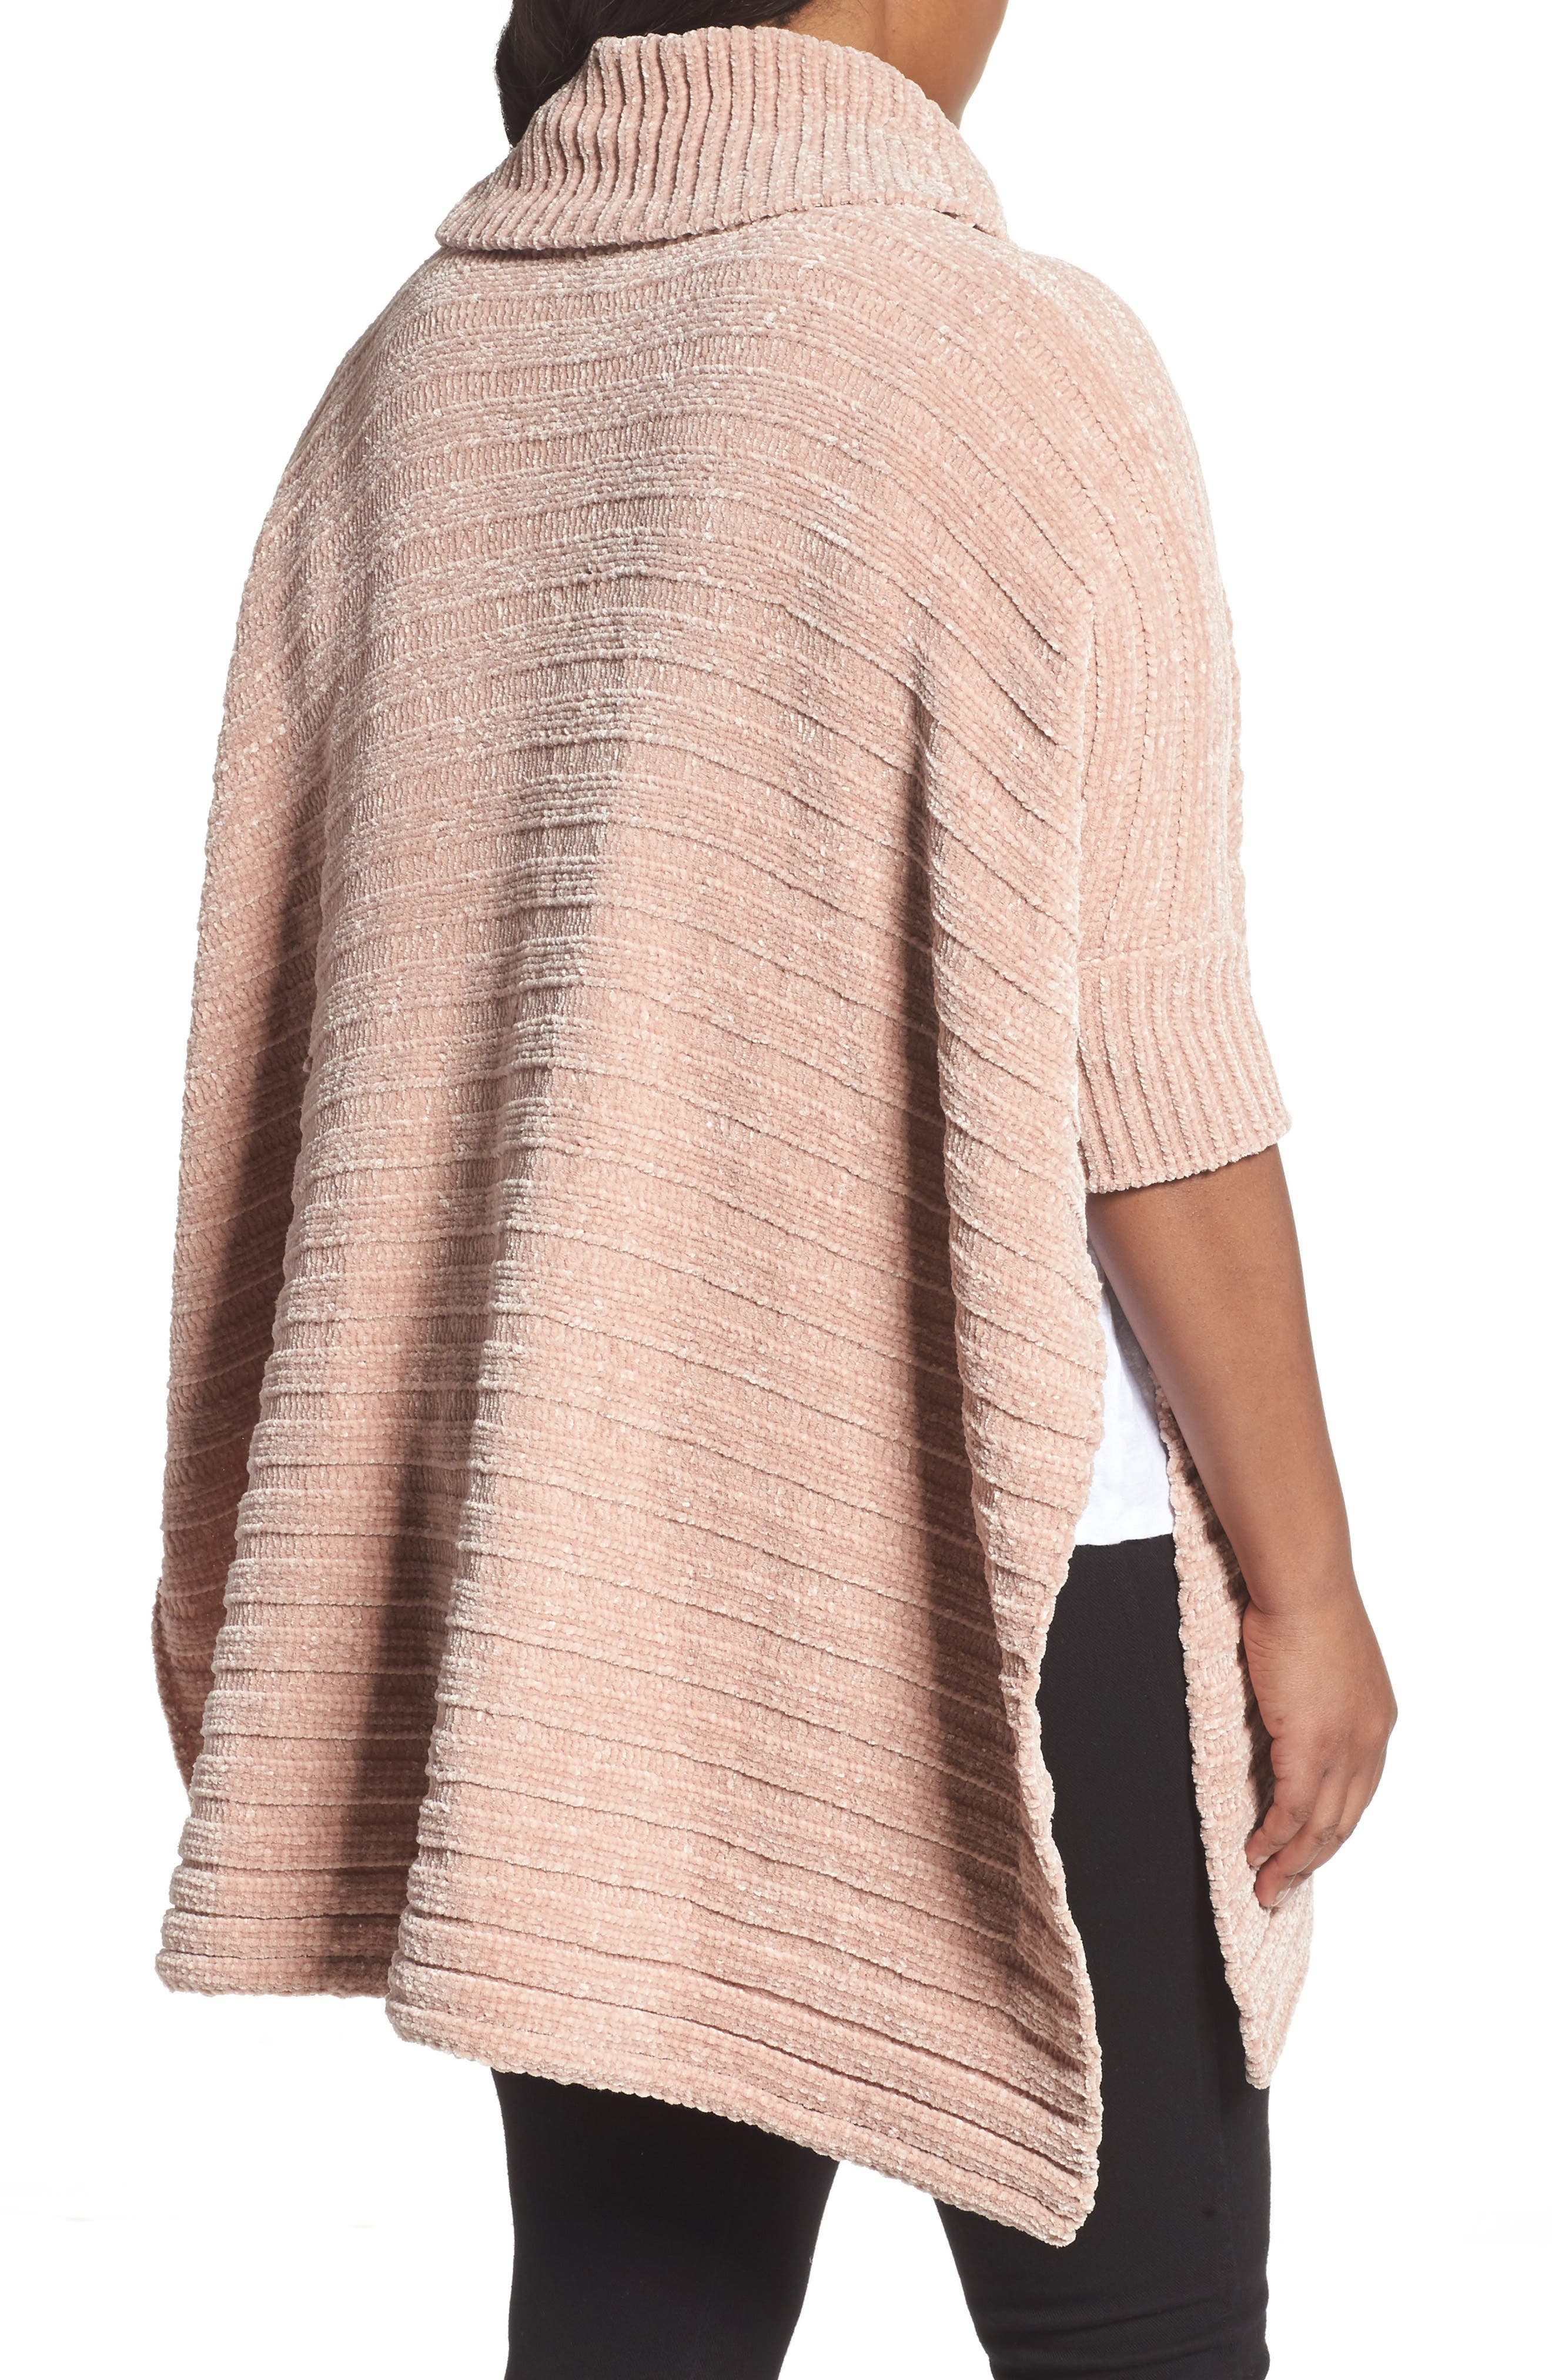 Chenille Poncho,                             Alternate thumbnail 2, color,                             Pink Adobe